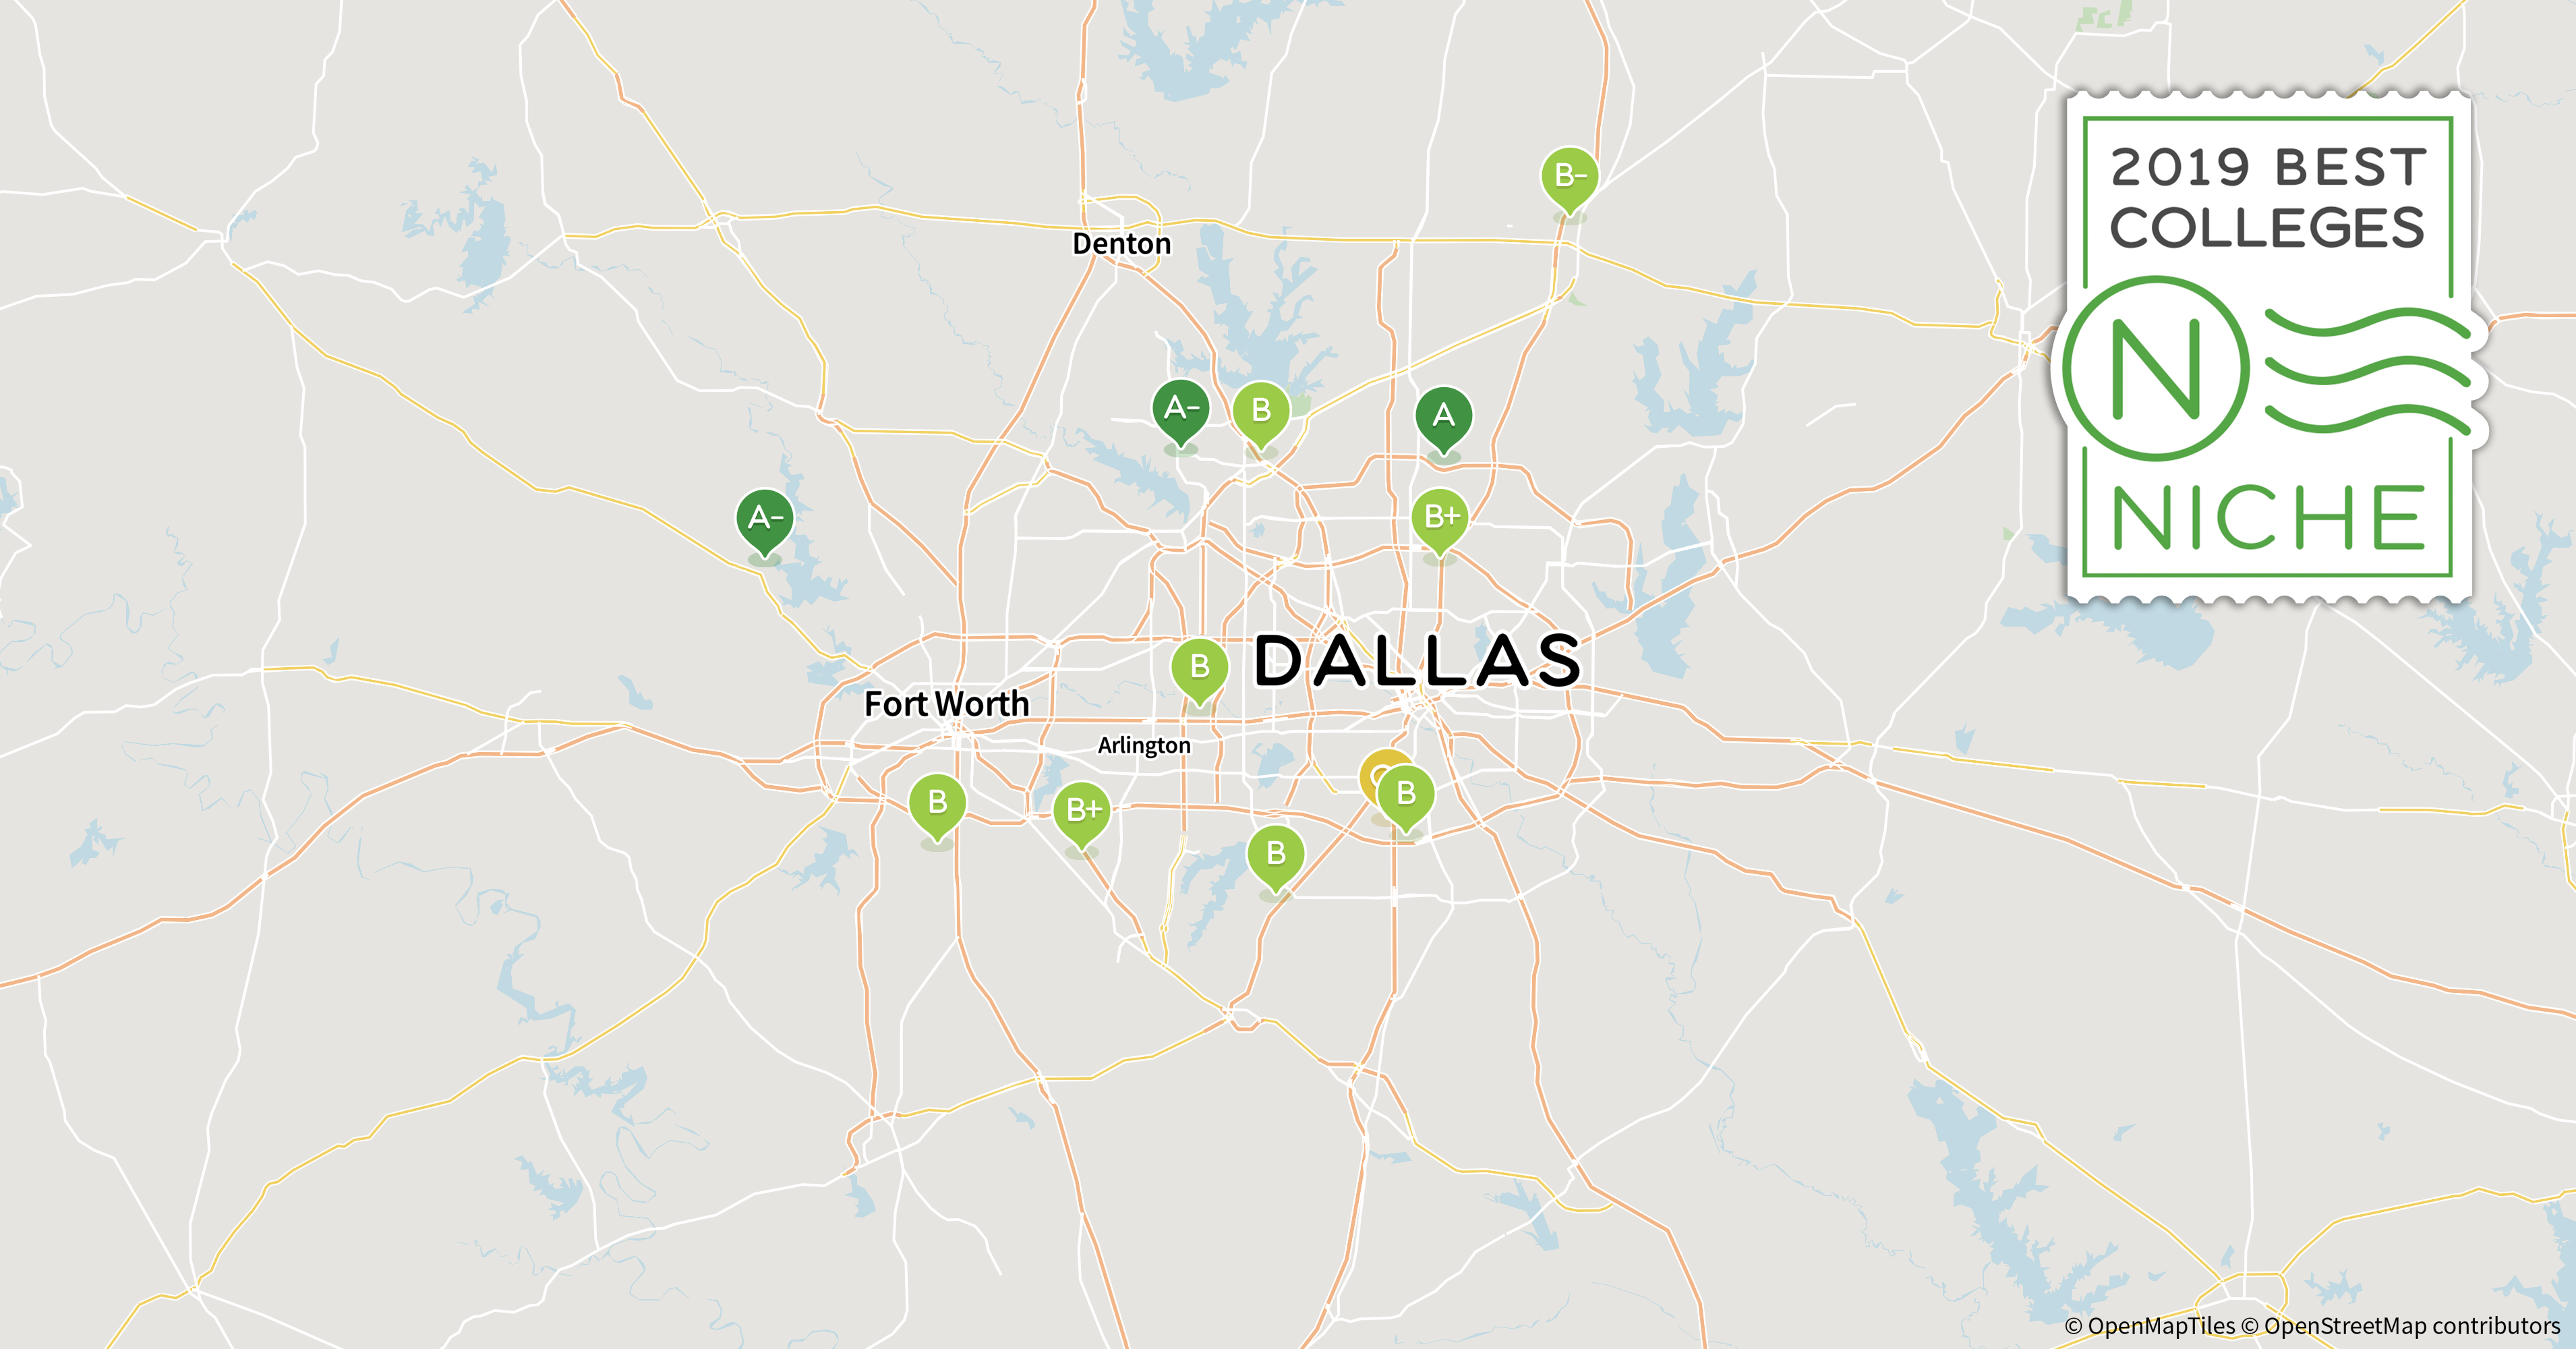 Universities In Dallas Texas >> 2019 Top Graduate Programs In The Dallas Fort Worth Area Niche